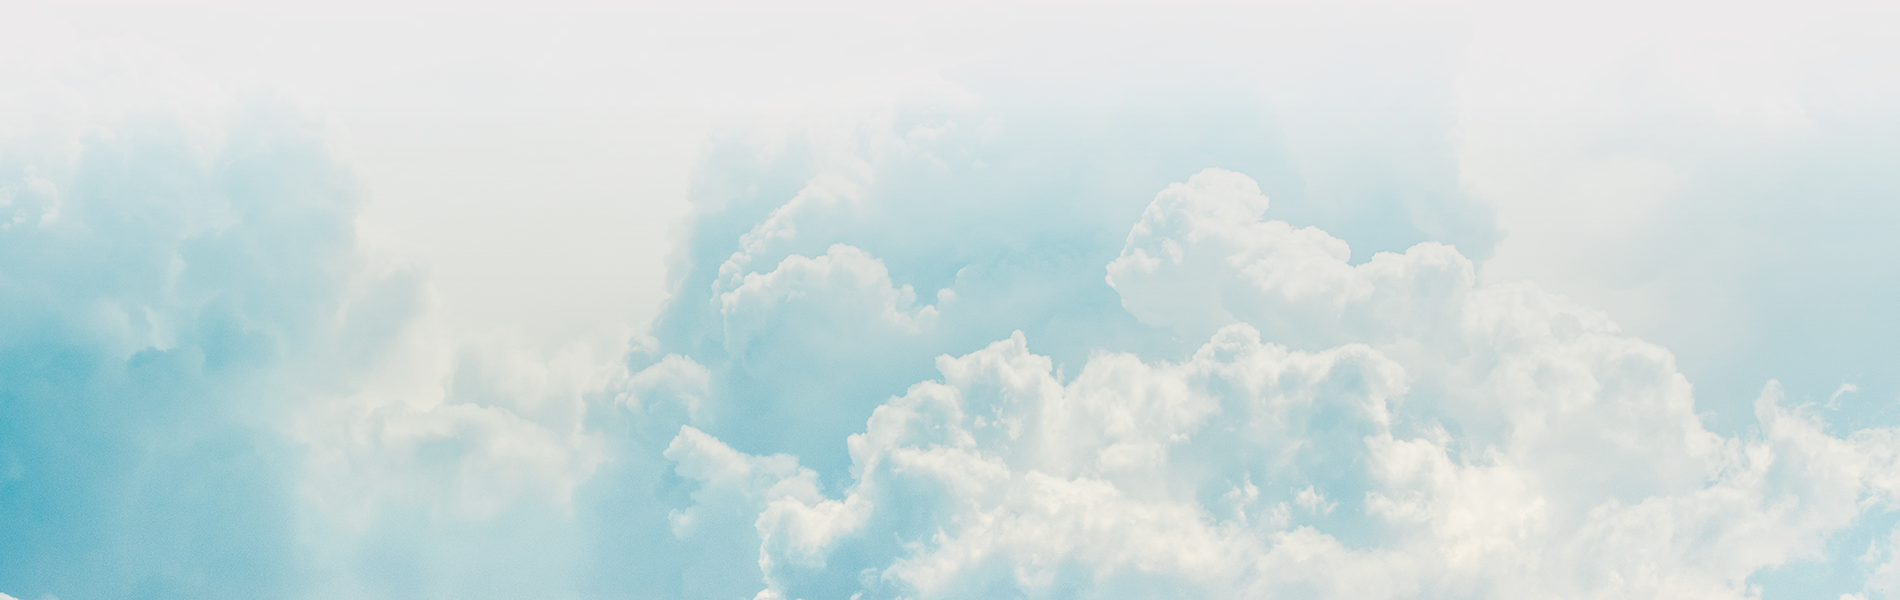 bg_clouds